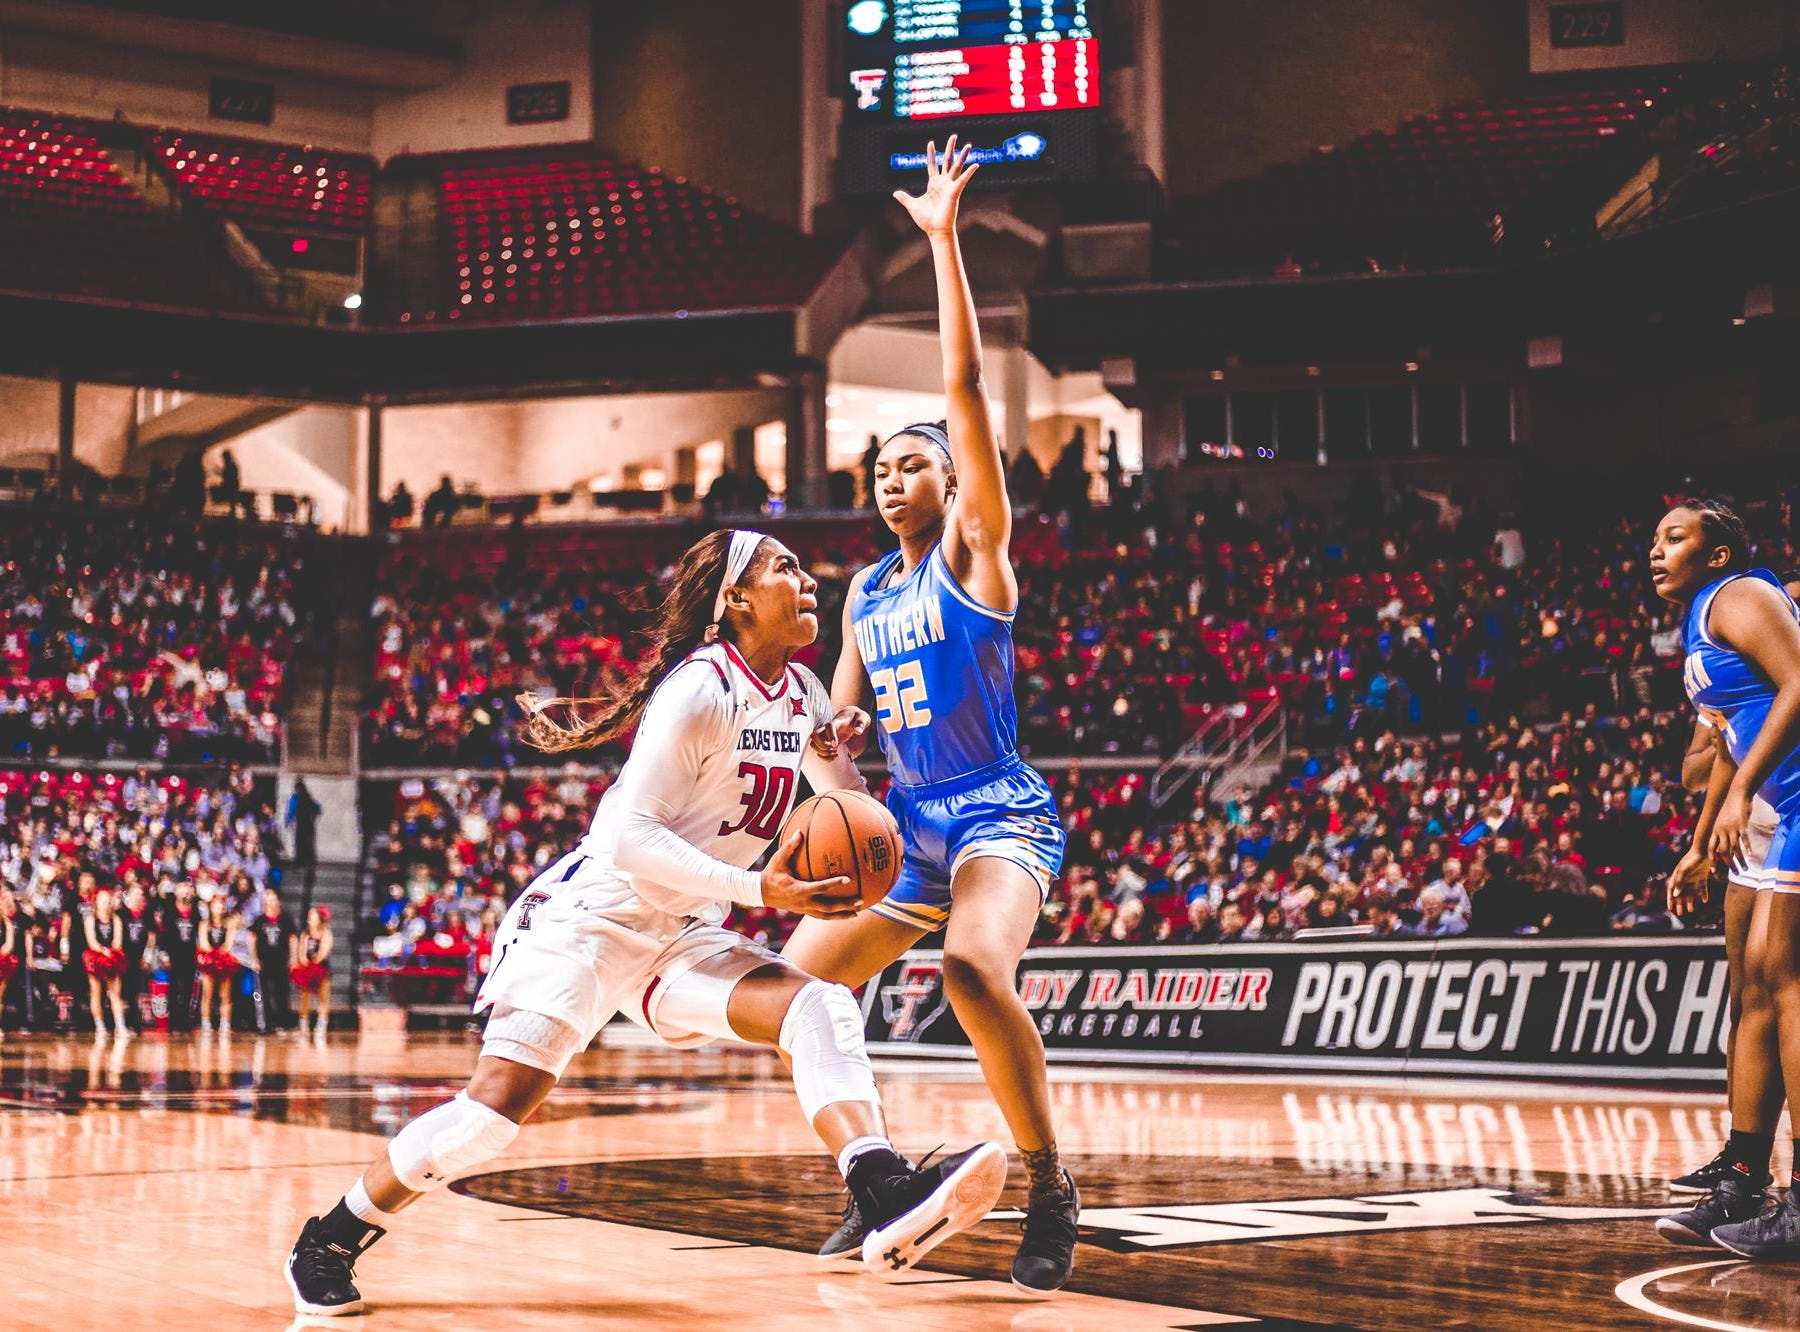 Central graduate Zuri Sanders is a senior at Texas Tech. She leads the Big 12 in rebounding.